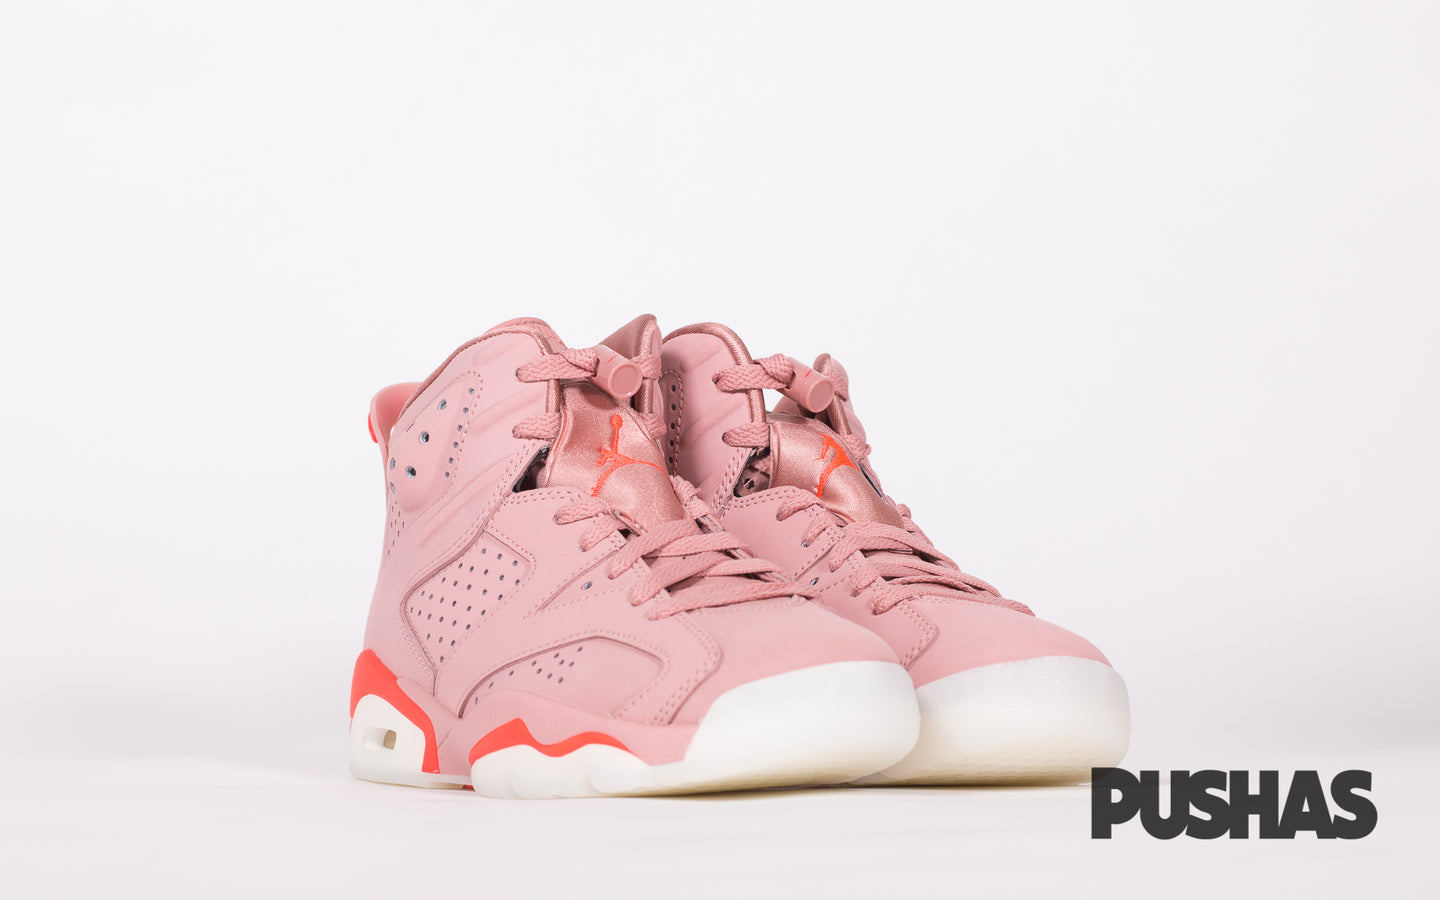 new product be649 c3032 Air Jordan 6 x Aleali May 'Millennial Pink' (New) – PUSHAS